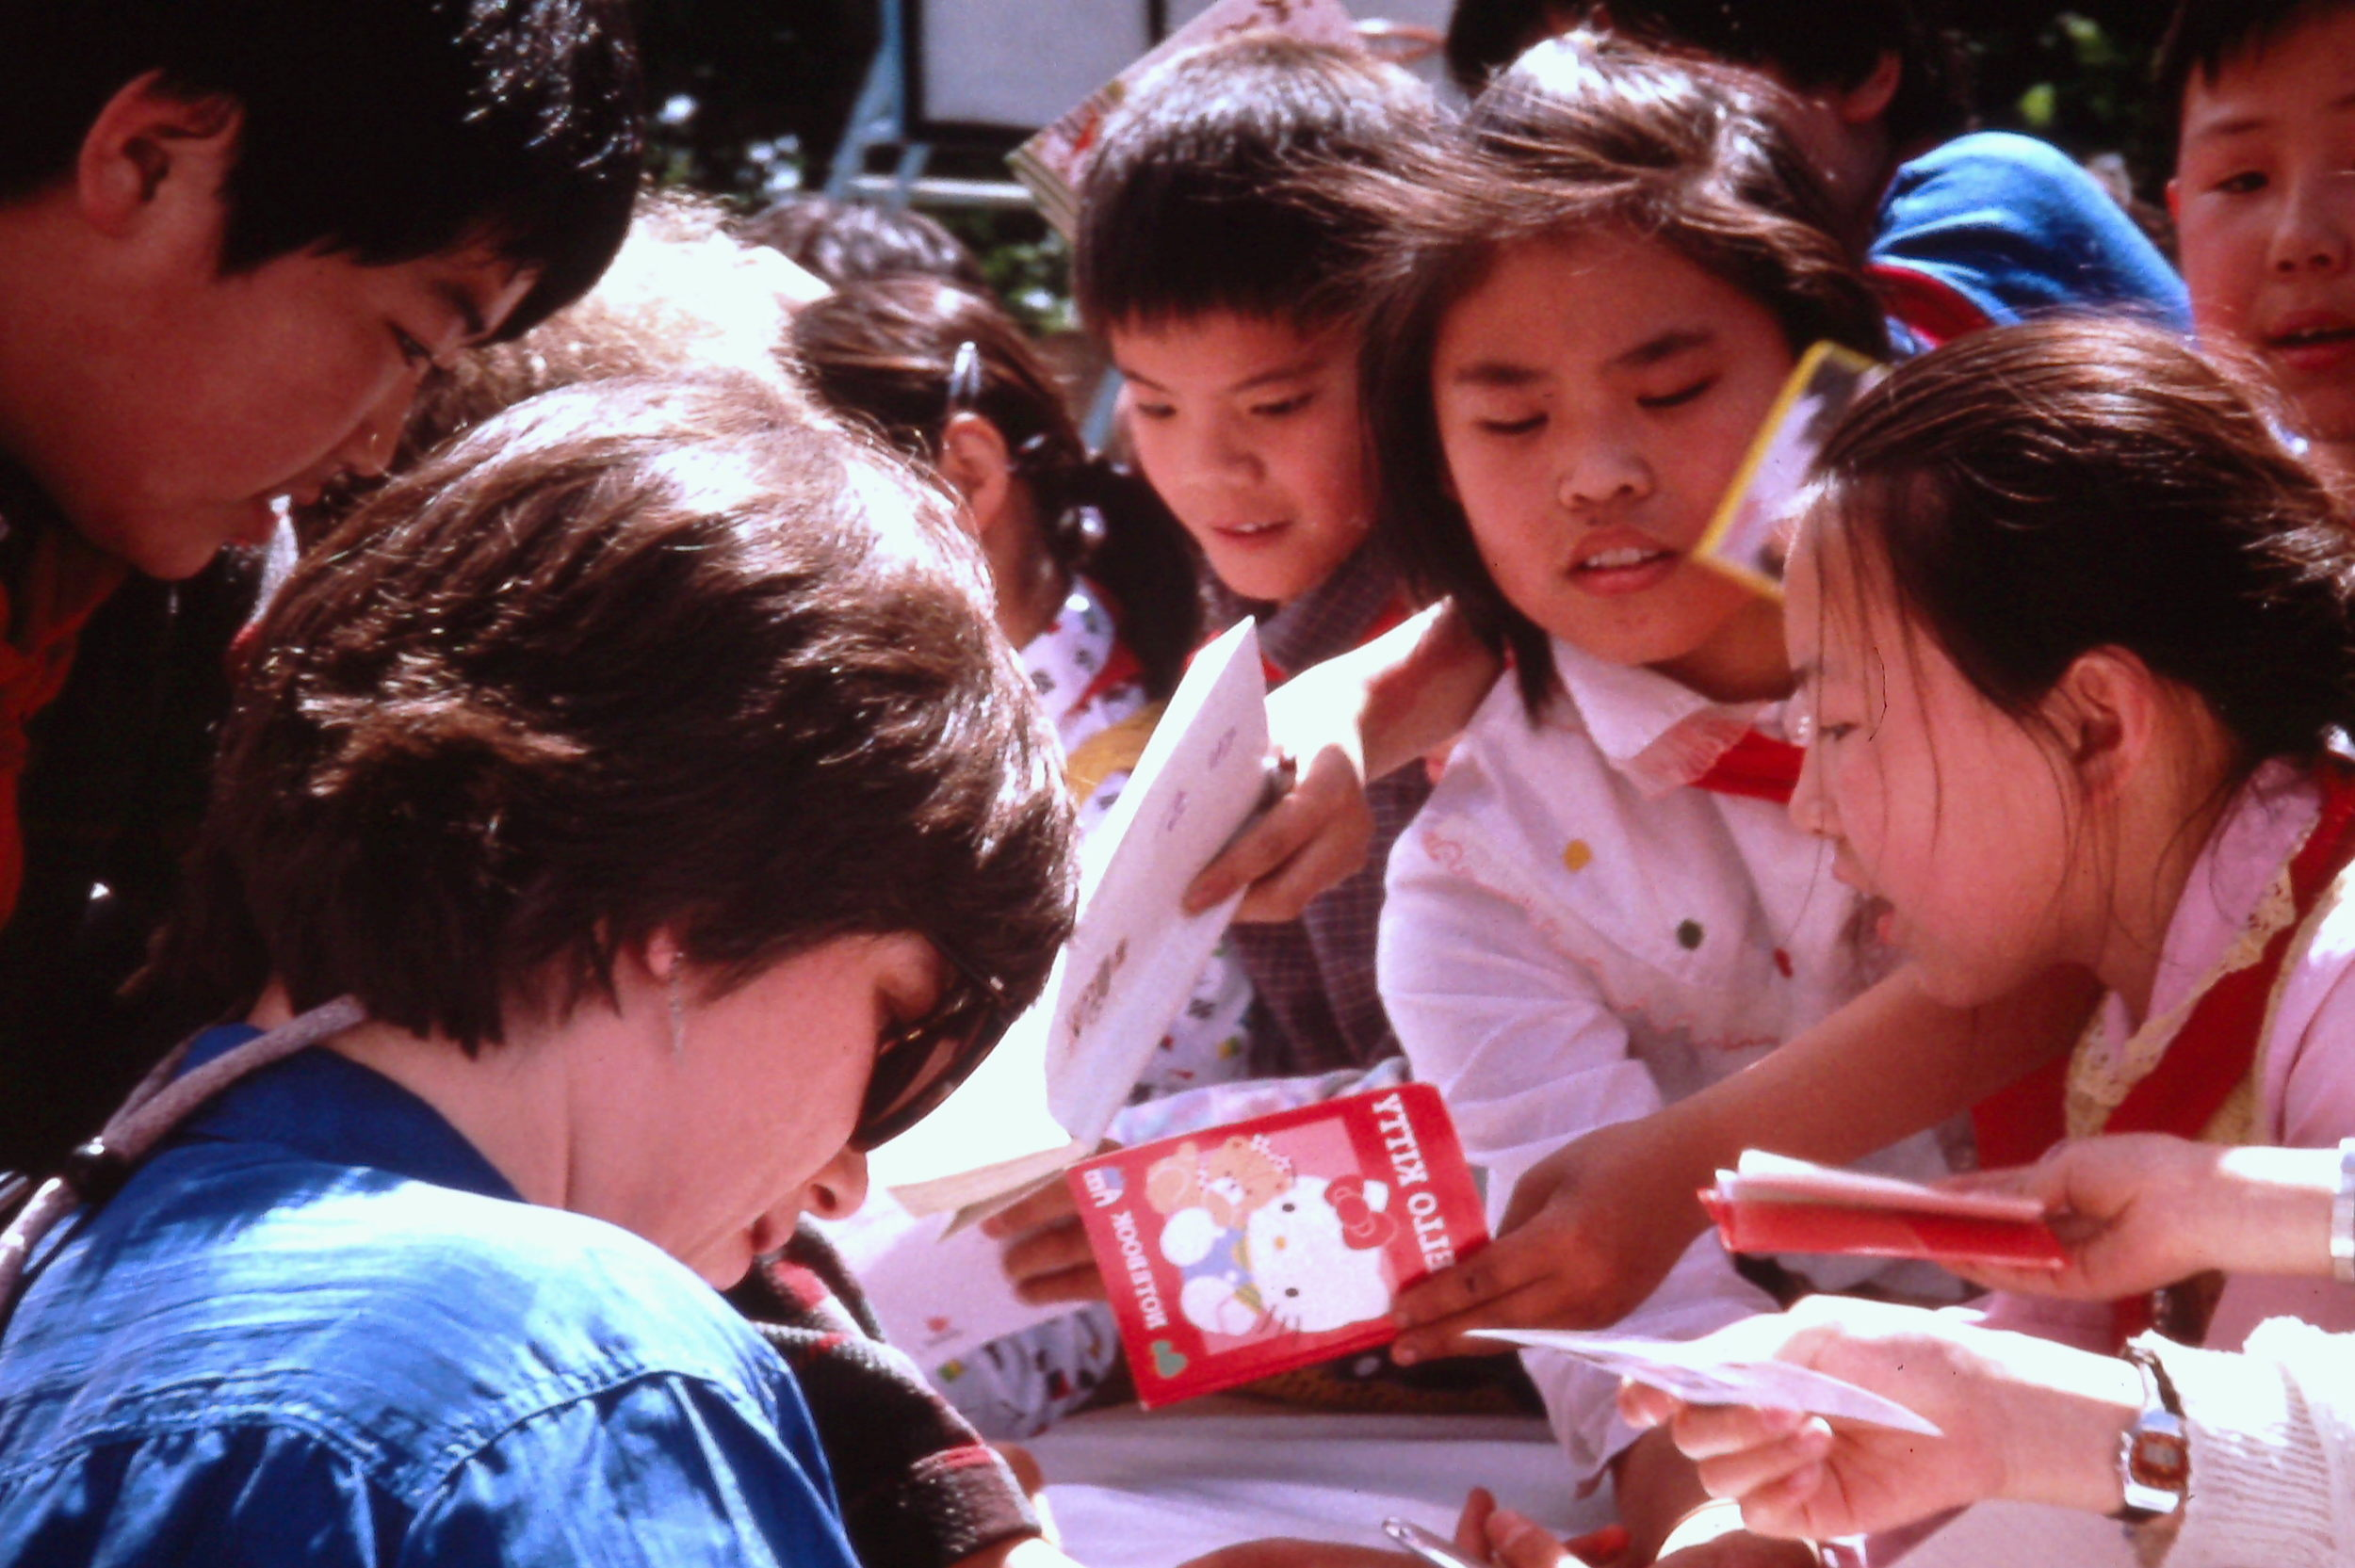 Students swarm the author for autographs,Beijing, China, May 1990. Photo: Cynthia Mueller